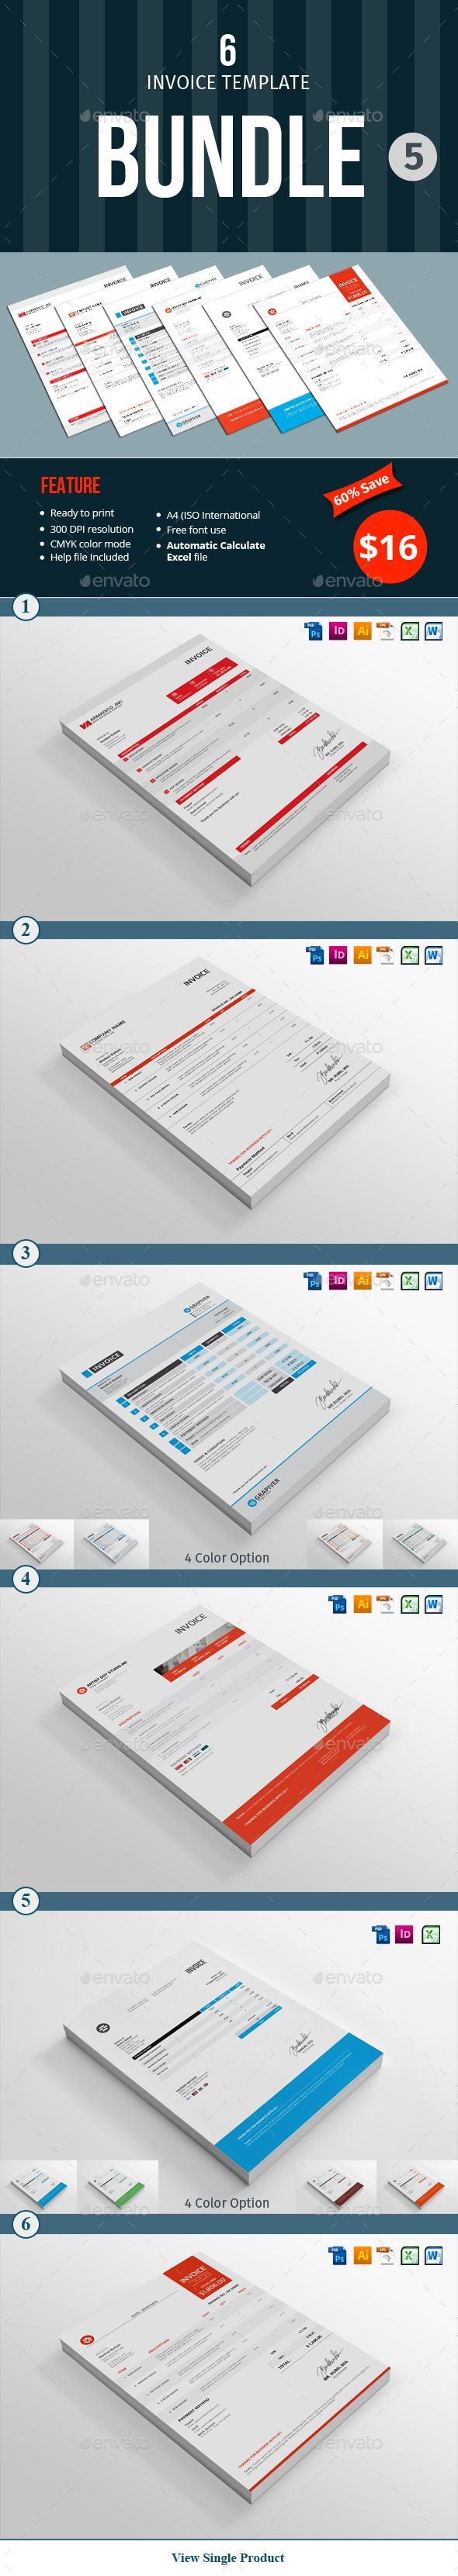 17 Best Images About Invoice Templates On Pinterest Cleanses